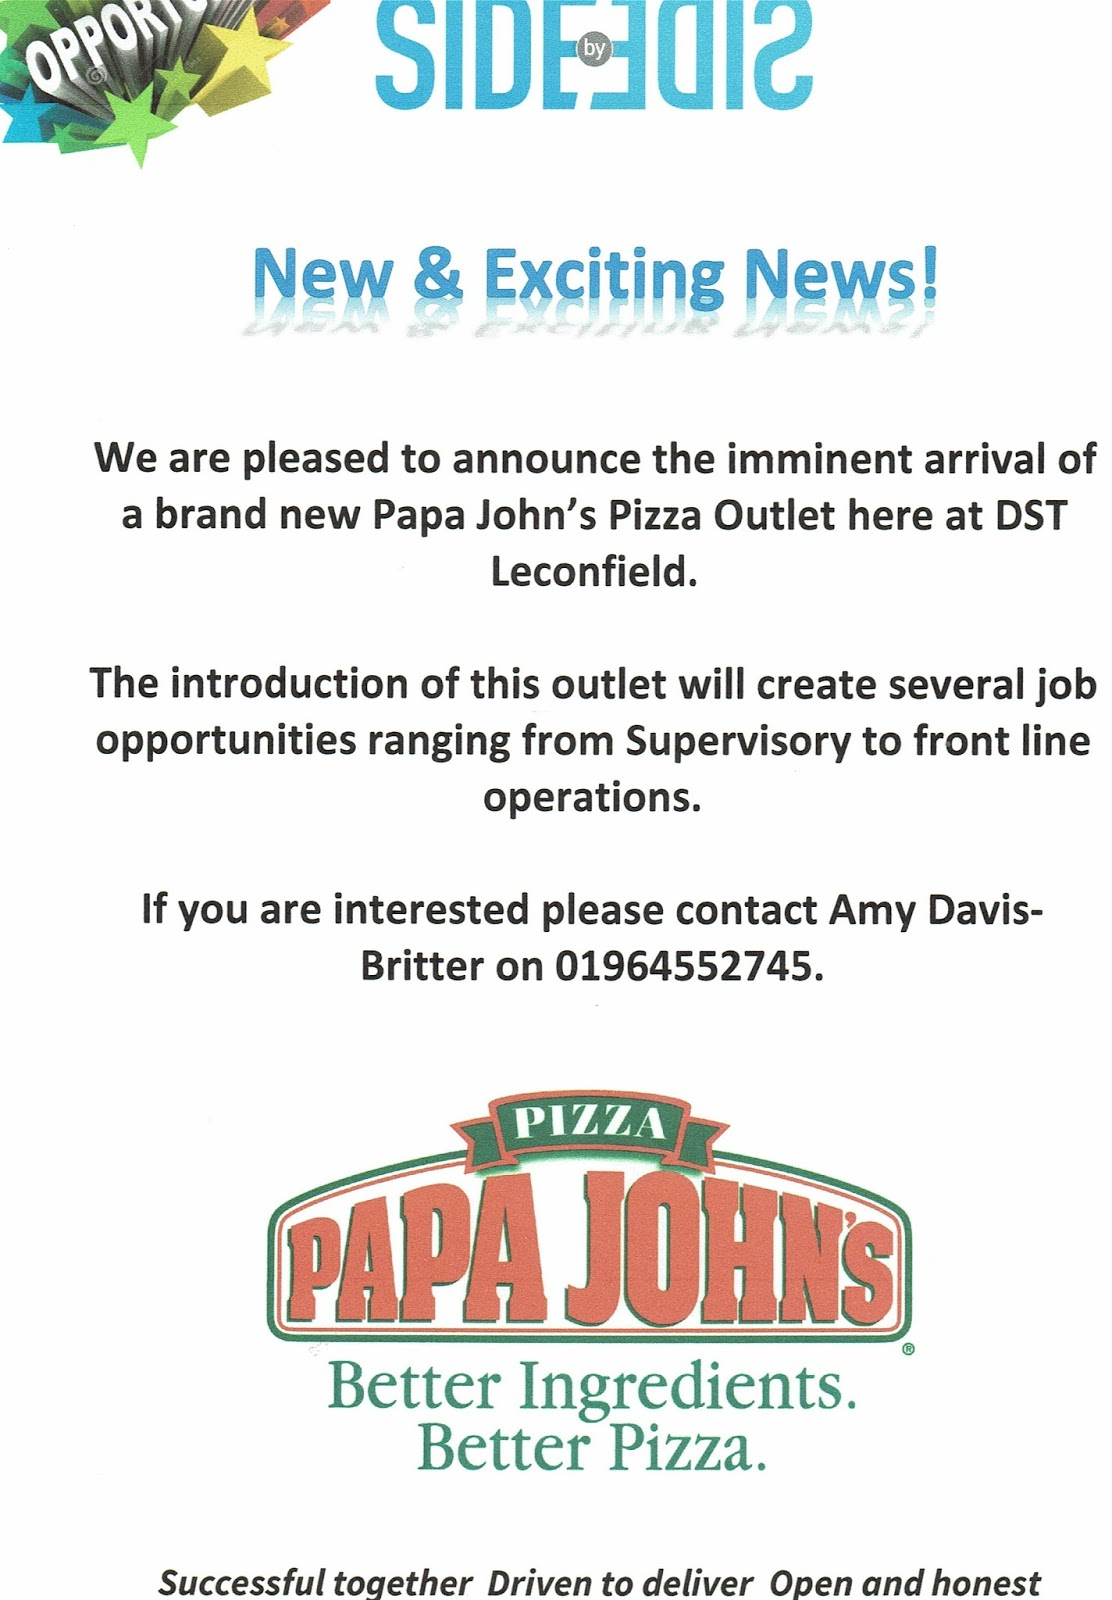 LECONFIELD HIVE: Employment Opportunities with Papa Johns at DST